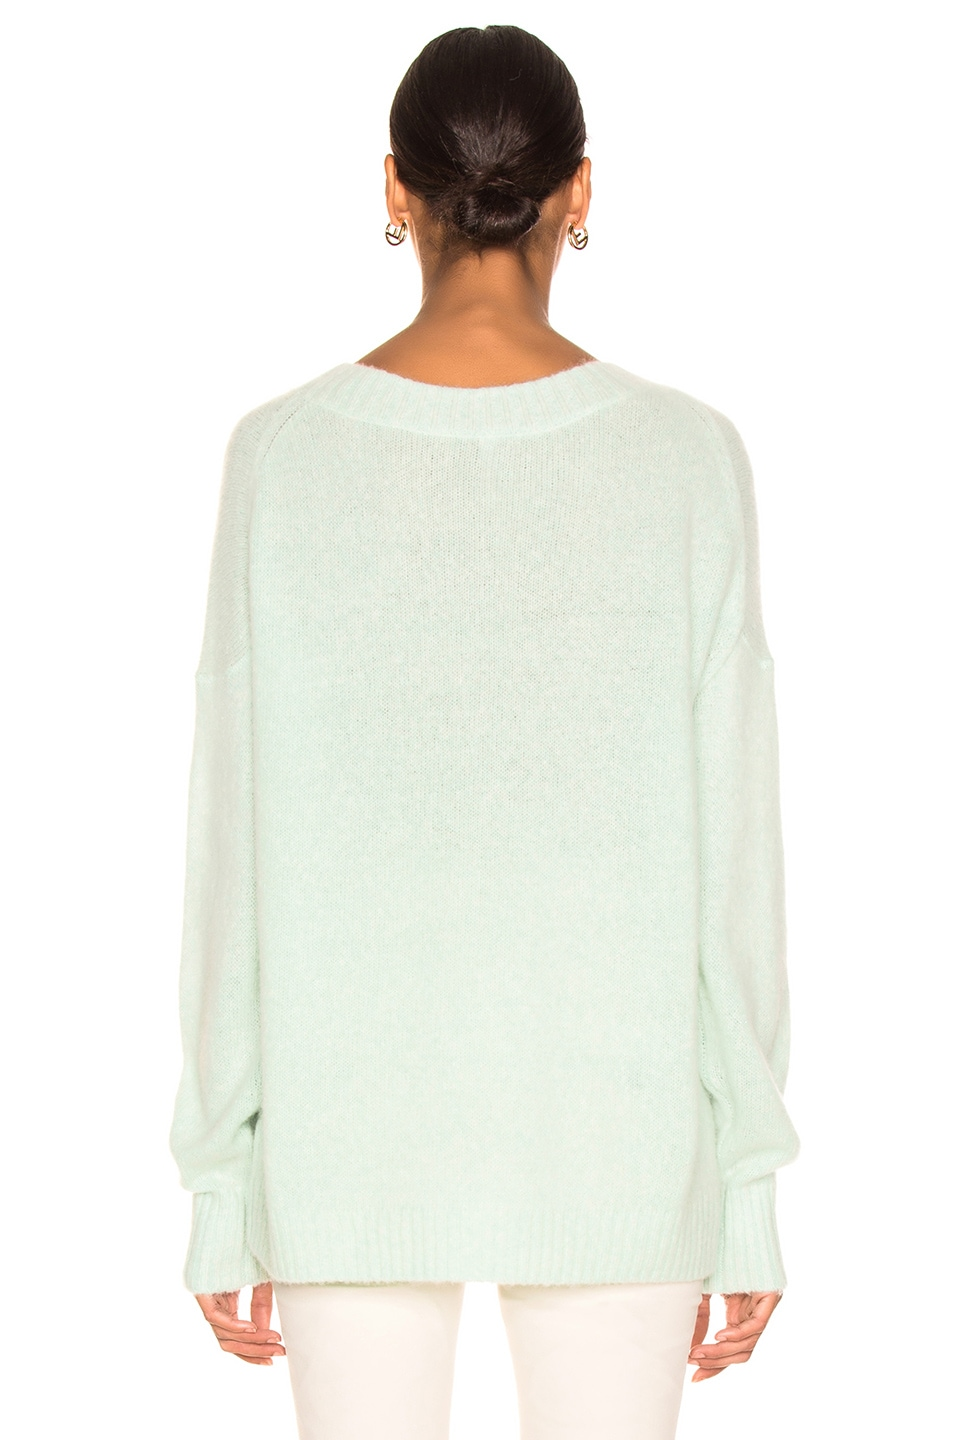 Image 3 of Soyer Anna Cashmere Scoopneck in Celadon